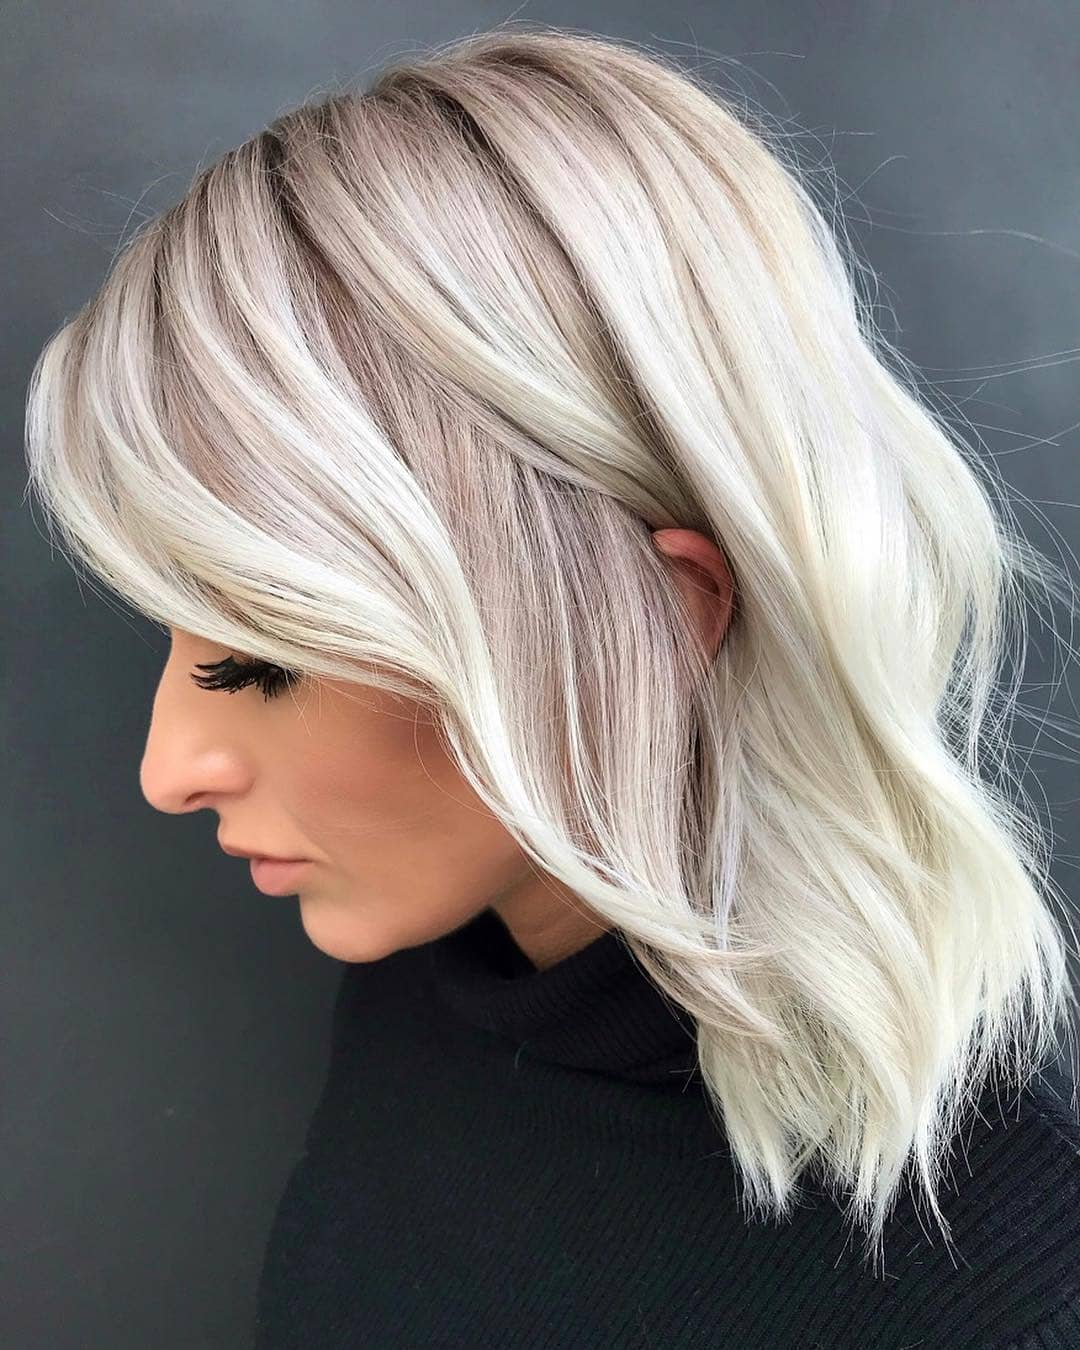 Layered-Haircut-in-Silver-Blonde Most Trendy and Terrific Medium Hairstyles 2020